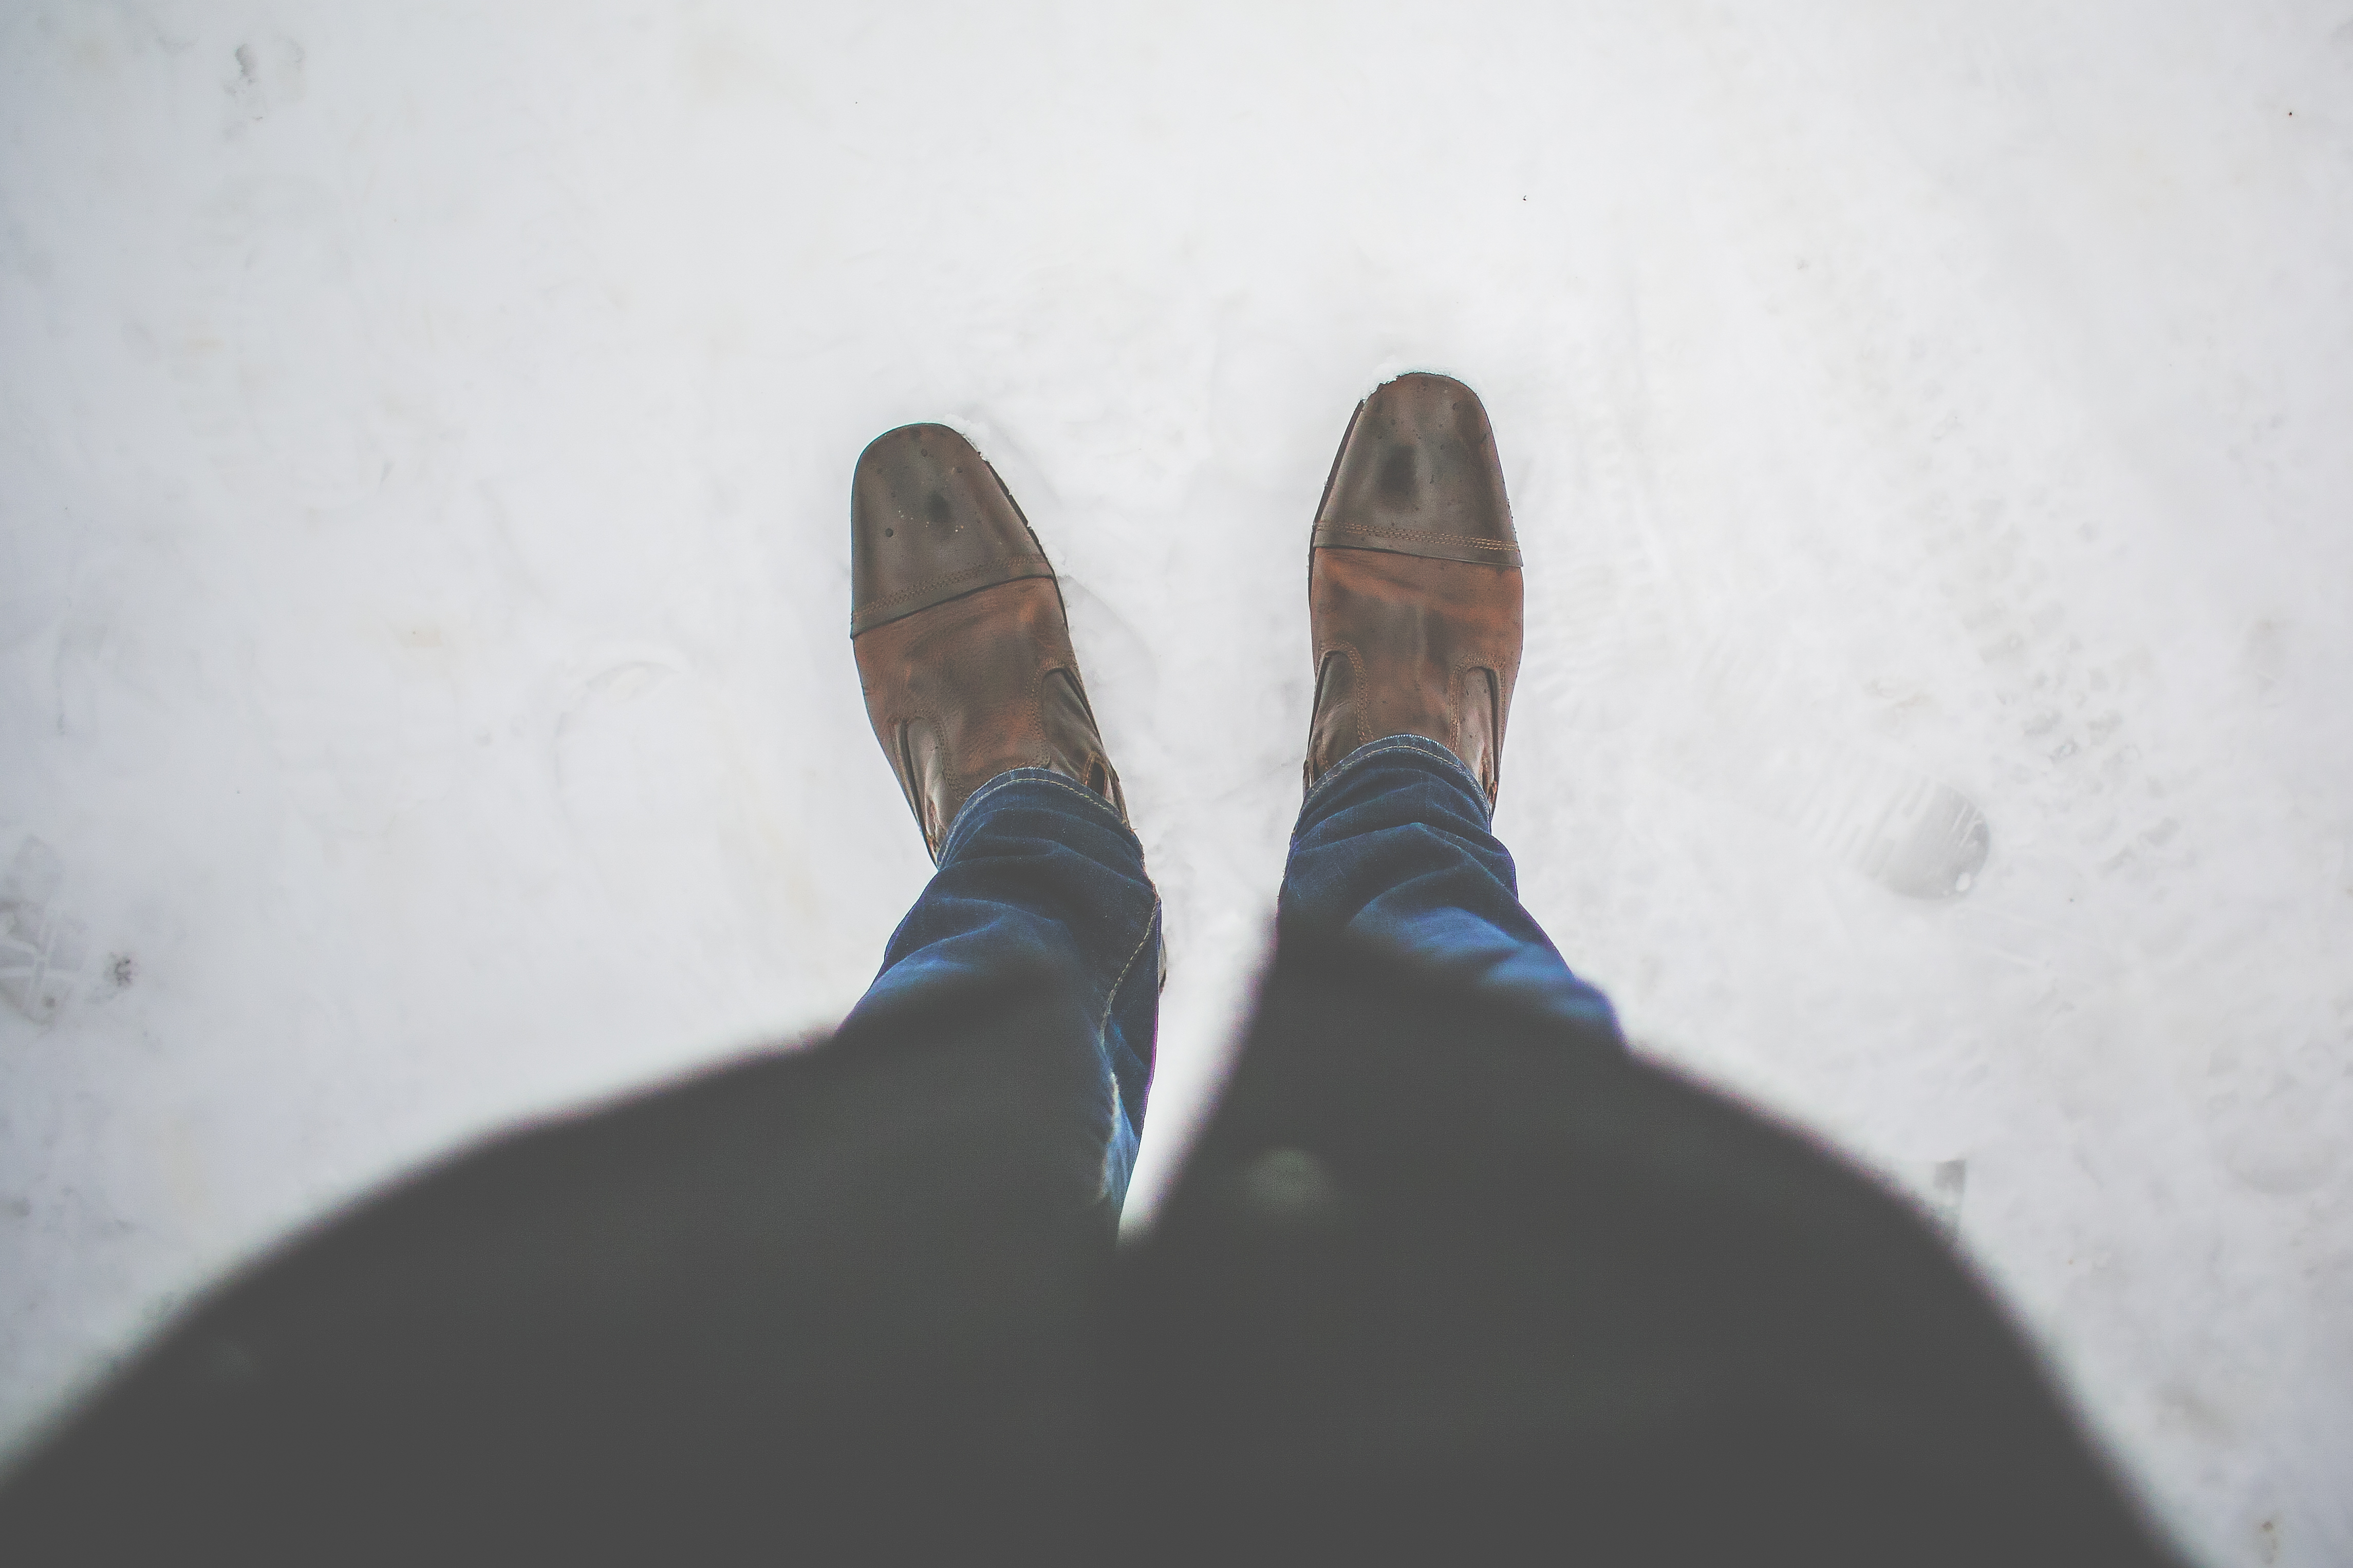 men-leather-shoes-in-snow-picjumbo-com